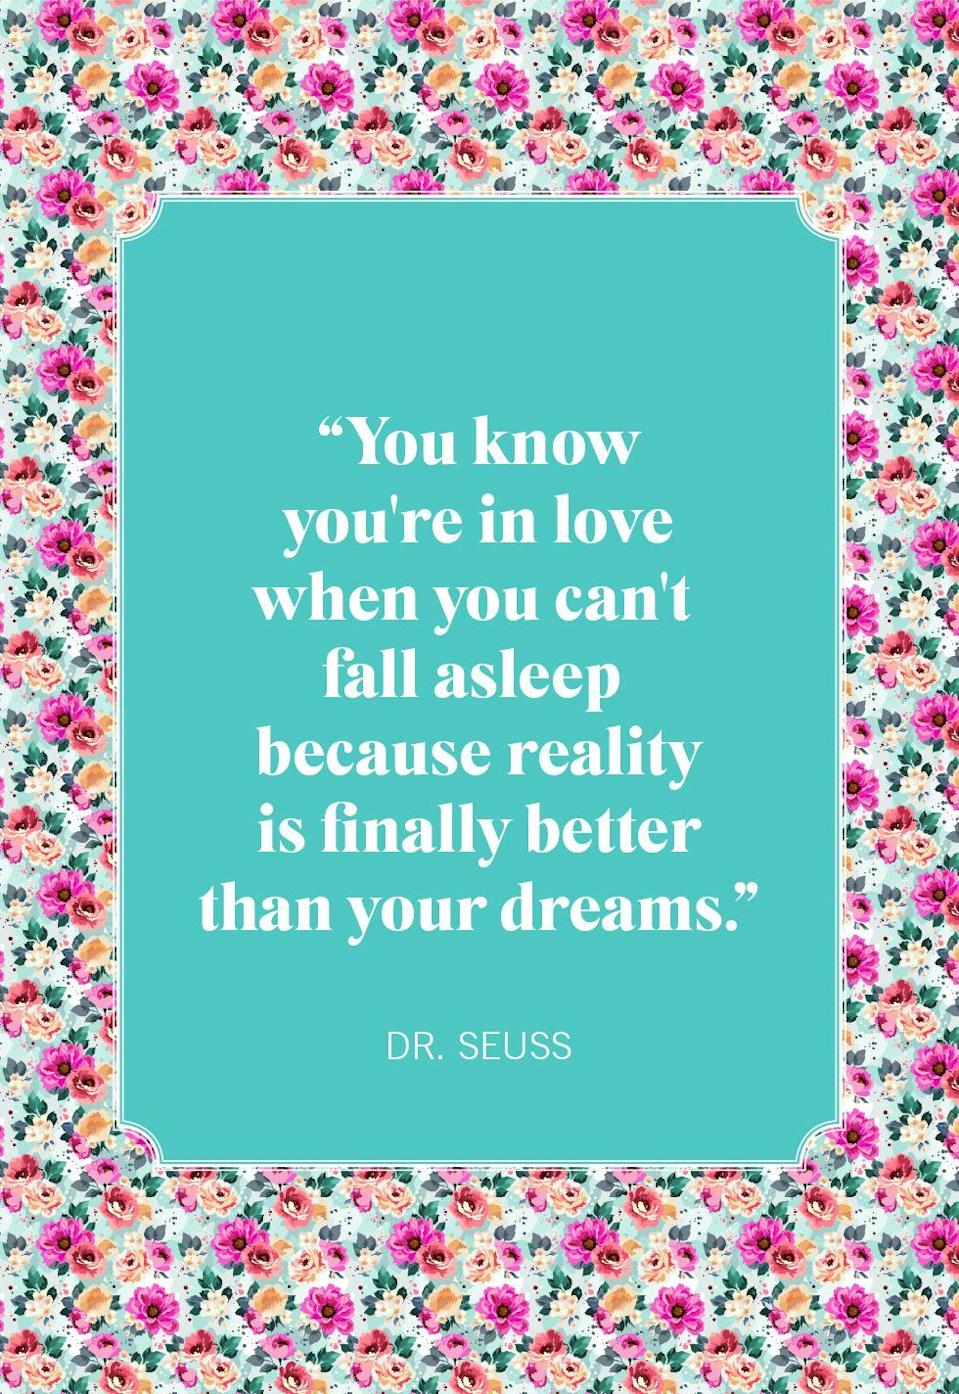 "<p>""You know you're in love when you can't fall asleep because reality is finally better than your dreams.""</p>"